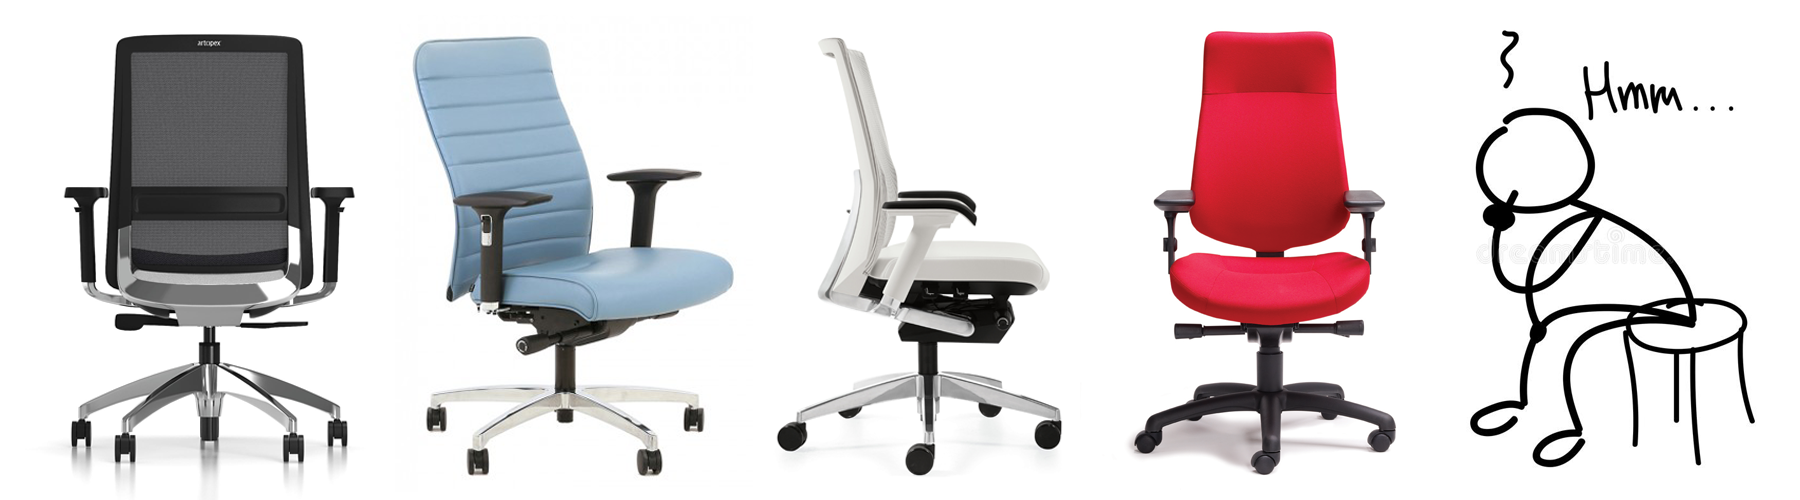 How to choose an ergonomic chair?